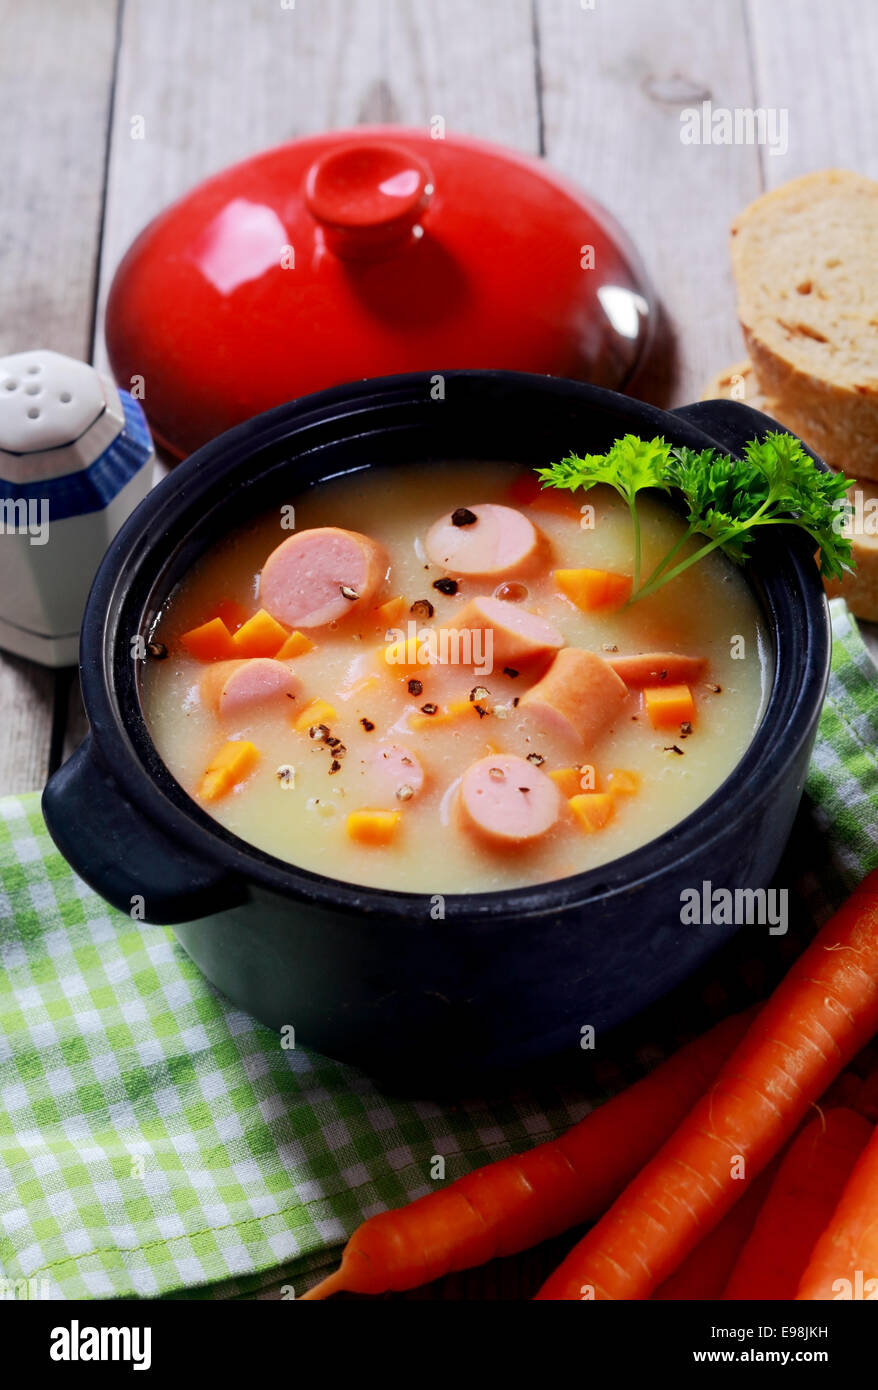 Close up Tasty Healthy Creamy Soup with Sausage on Black Pot Placed on Wooden Table. - Stock Image